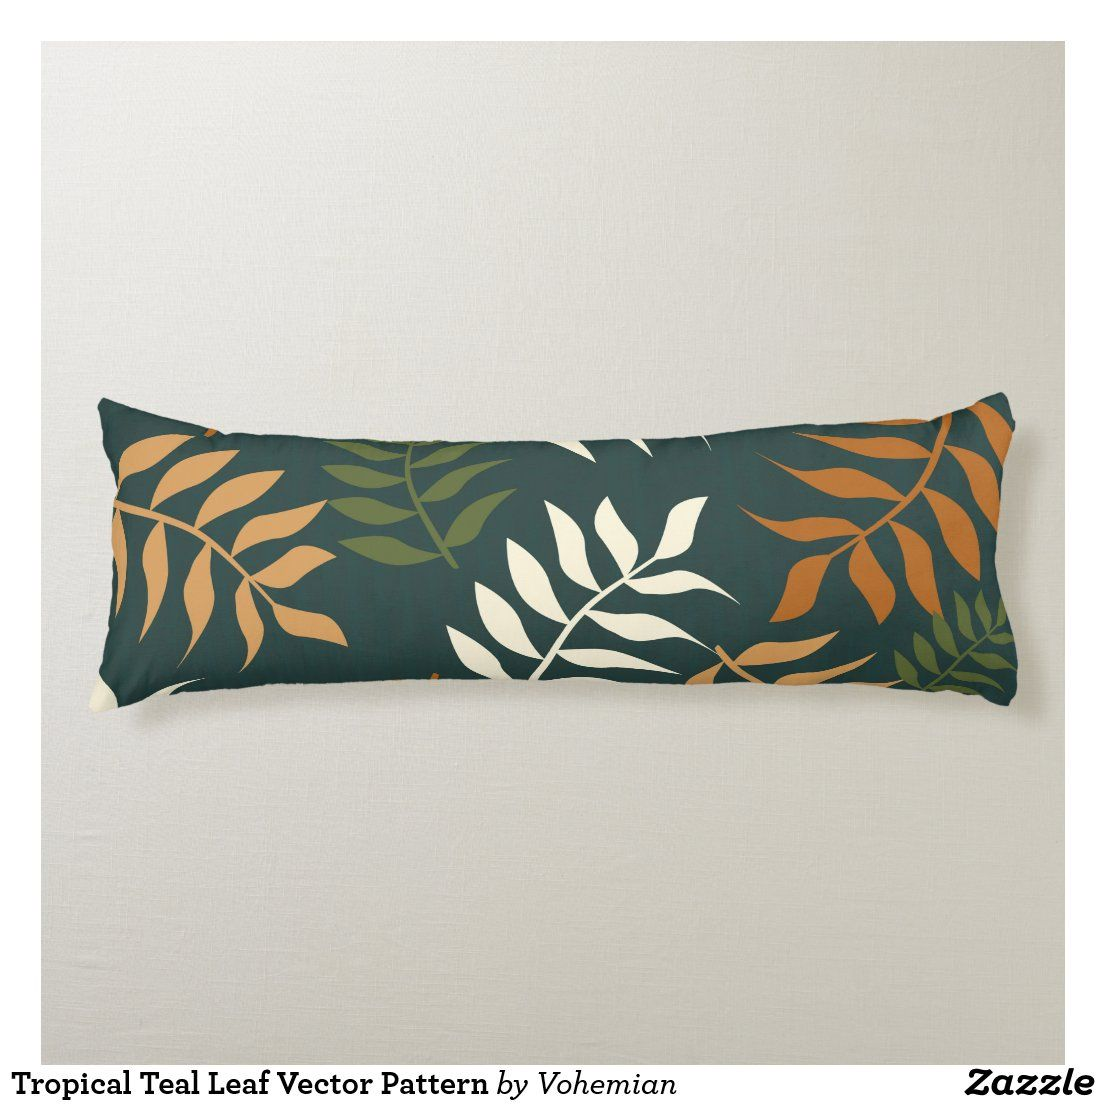 Tropical Teal Leaf Vector Pattern Body Pillow Pillow